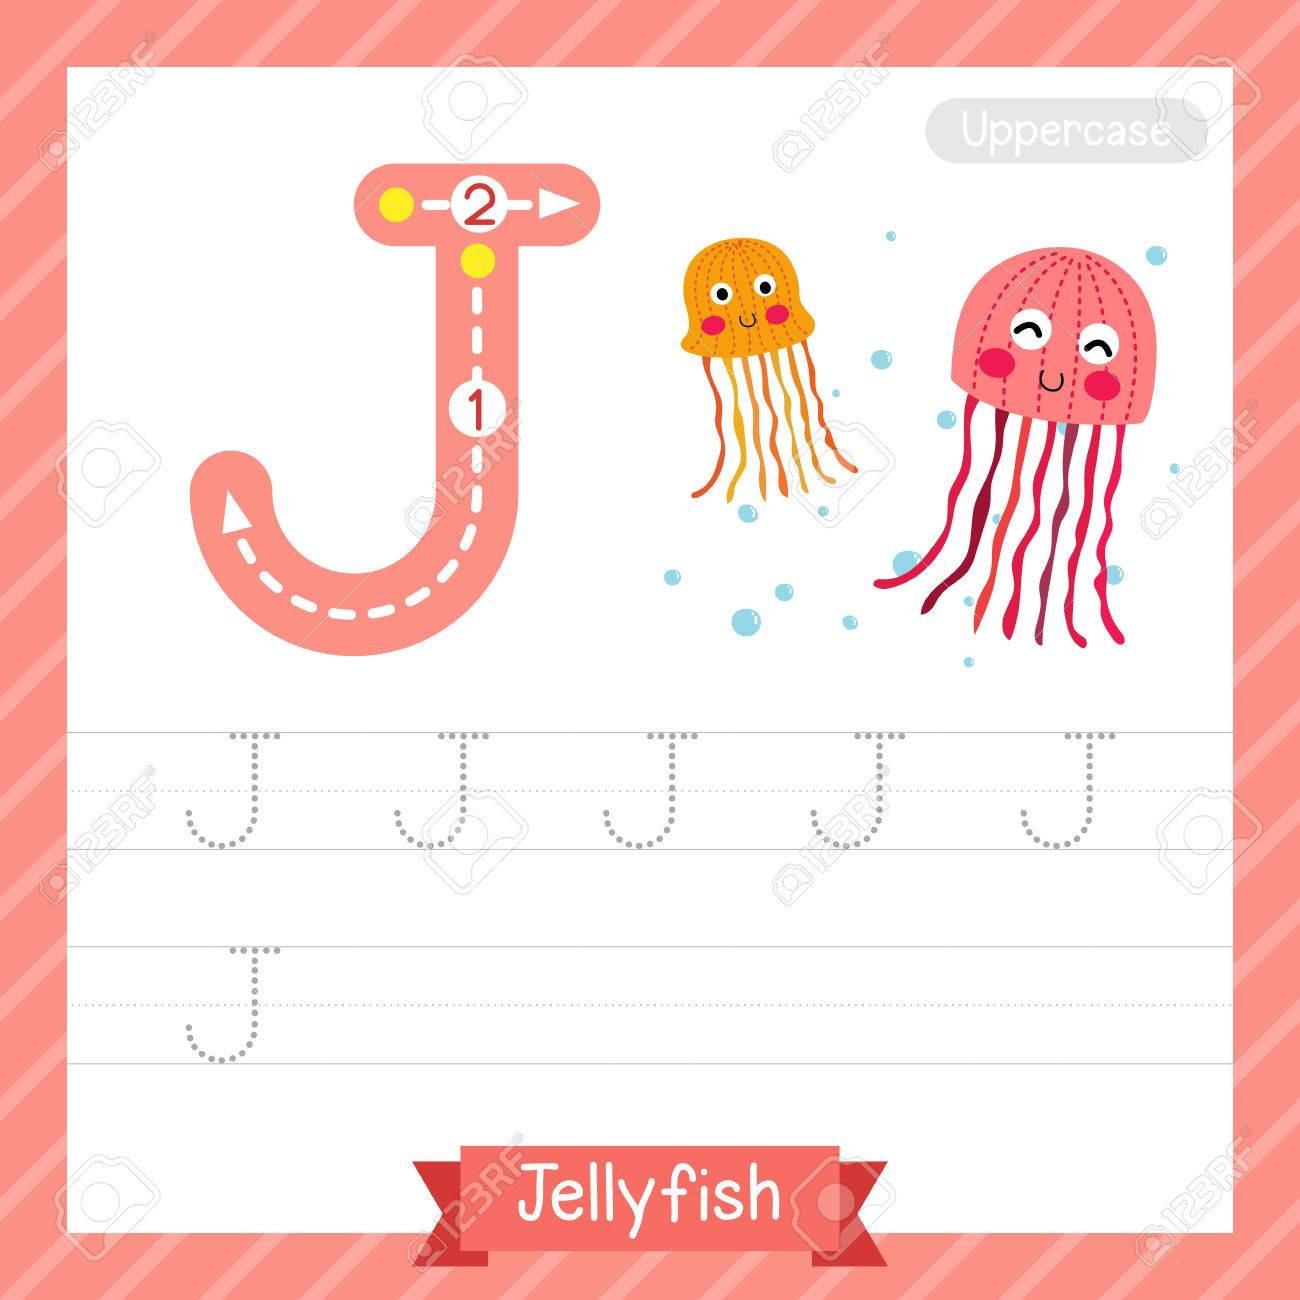 Letter J Uppercase Tracing Practice Worksheet With Jellyfish ...